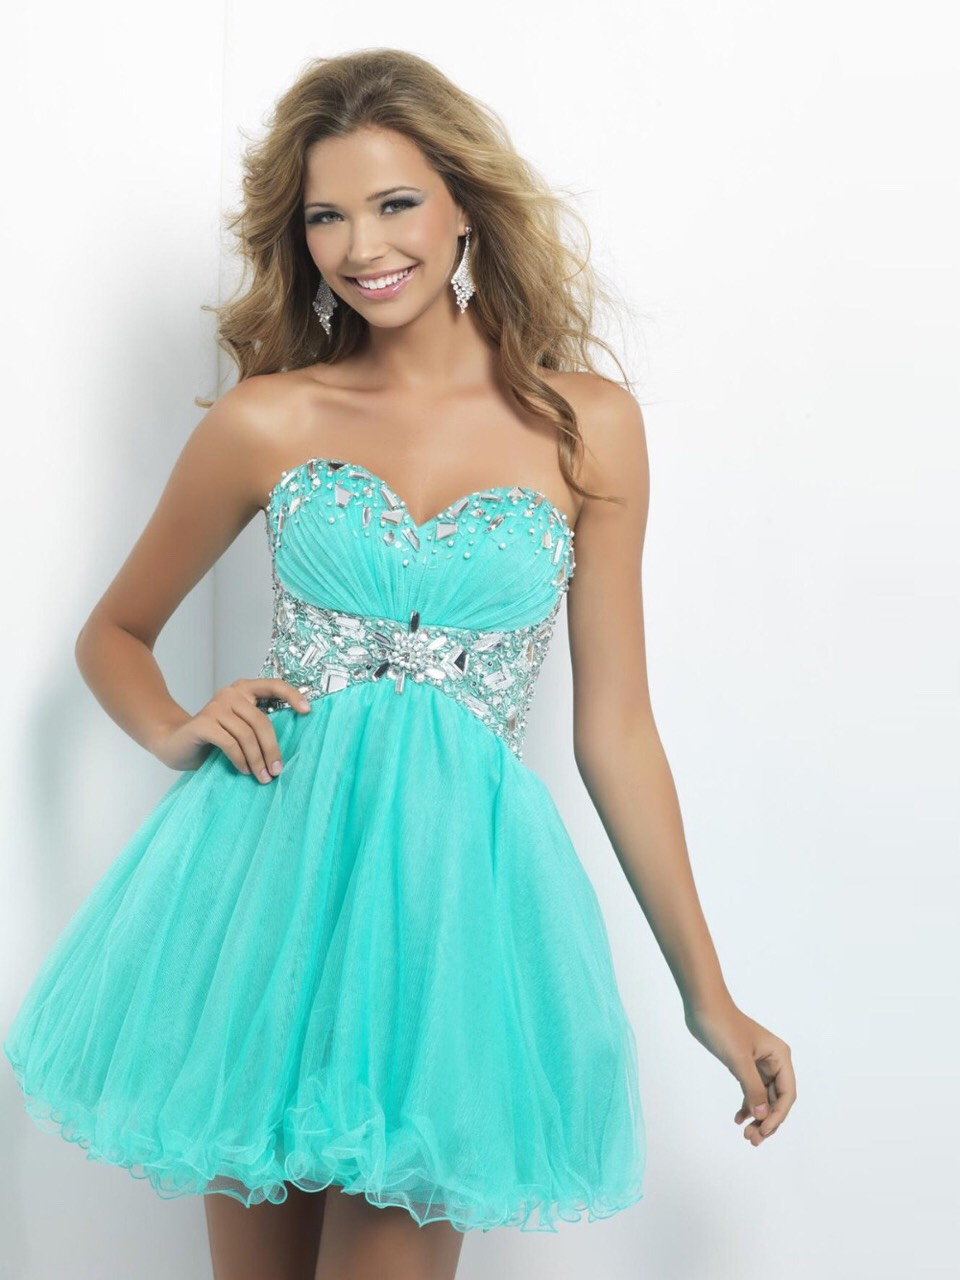 Prom dress ebay uk - Prom dress style